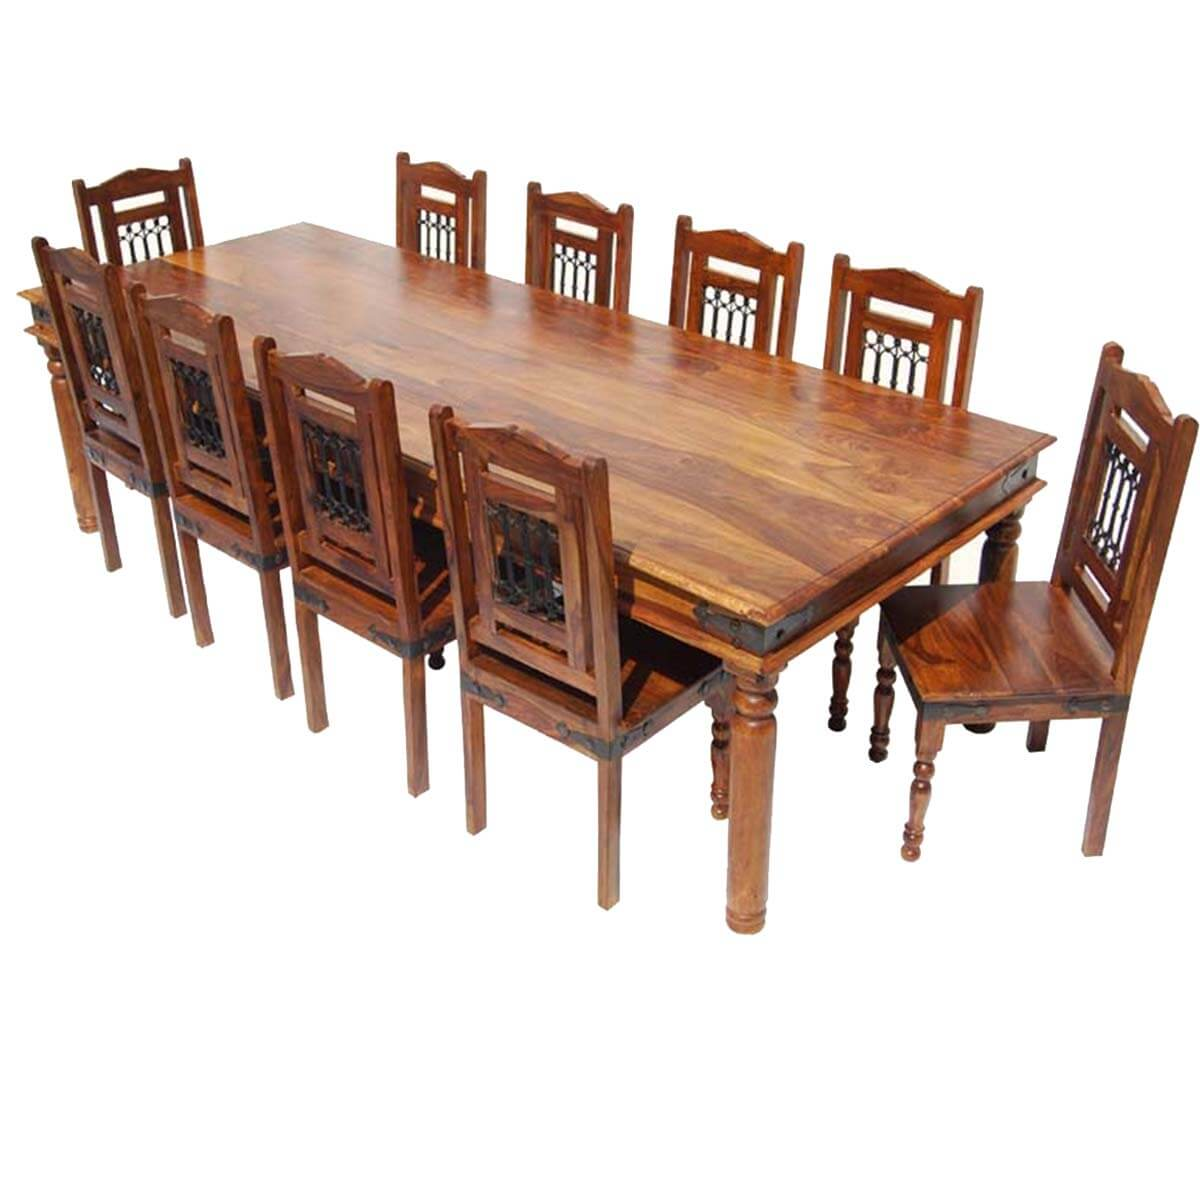 Solid wood large rustic dining room table chair sideboard set for Wooden dining room chairs